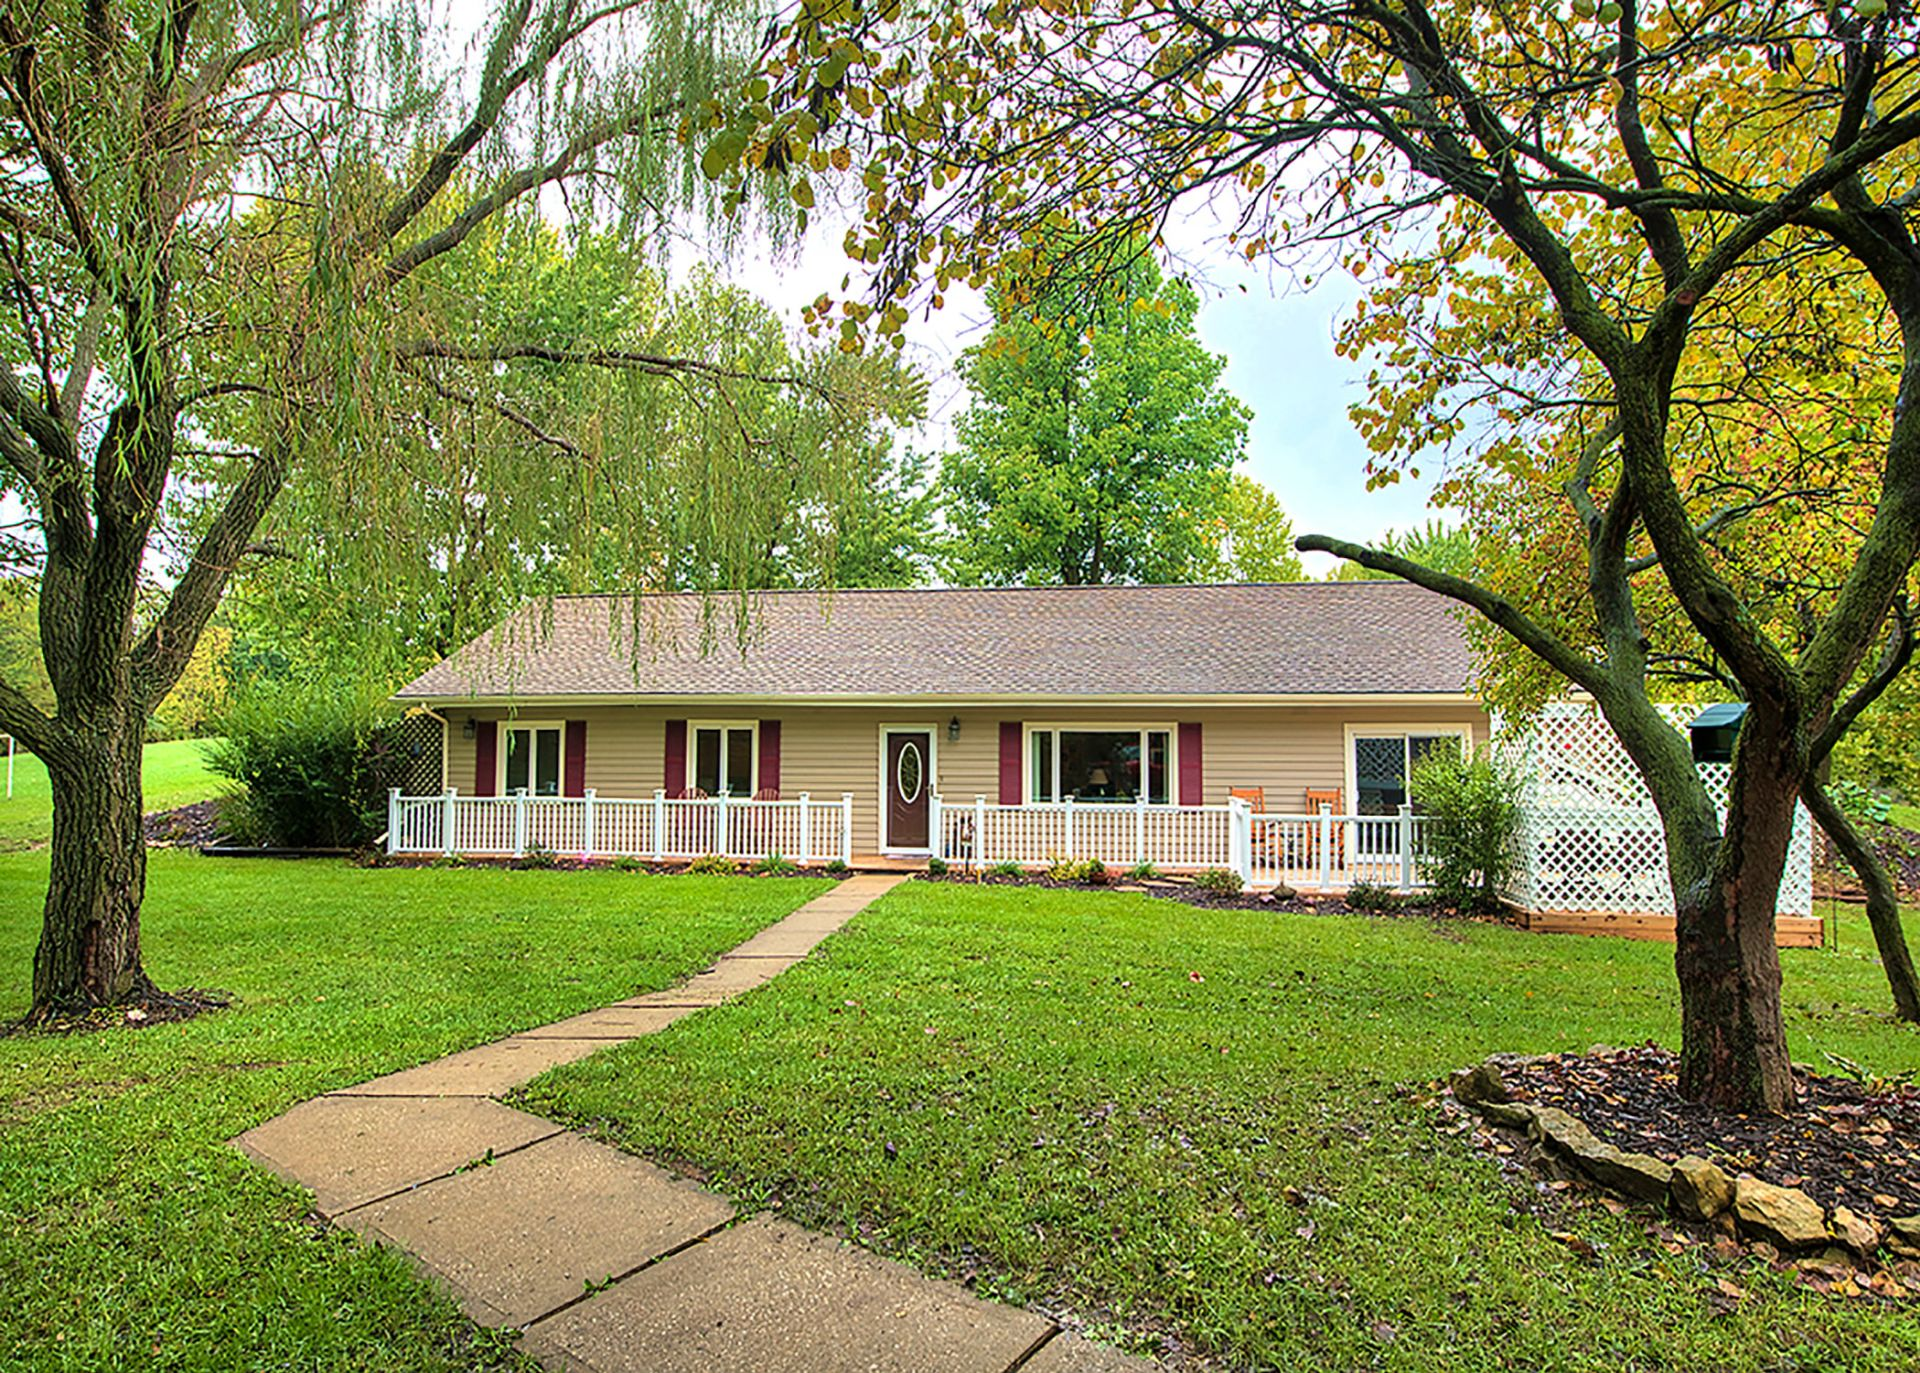 JUST LISTED!  Darling Ranch Home on 6 Private Pastoral Acres